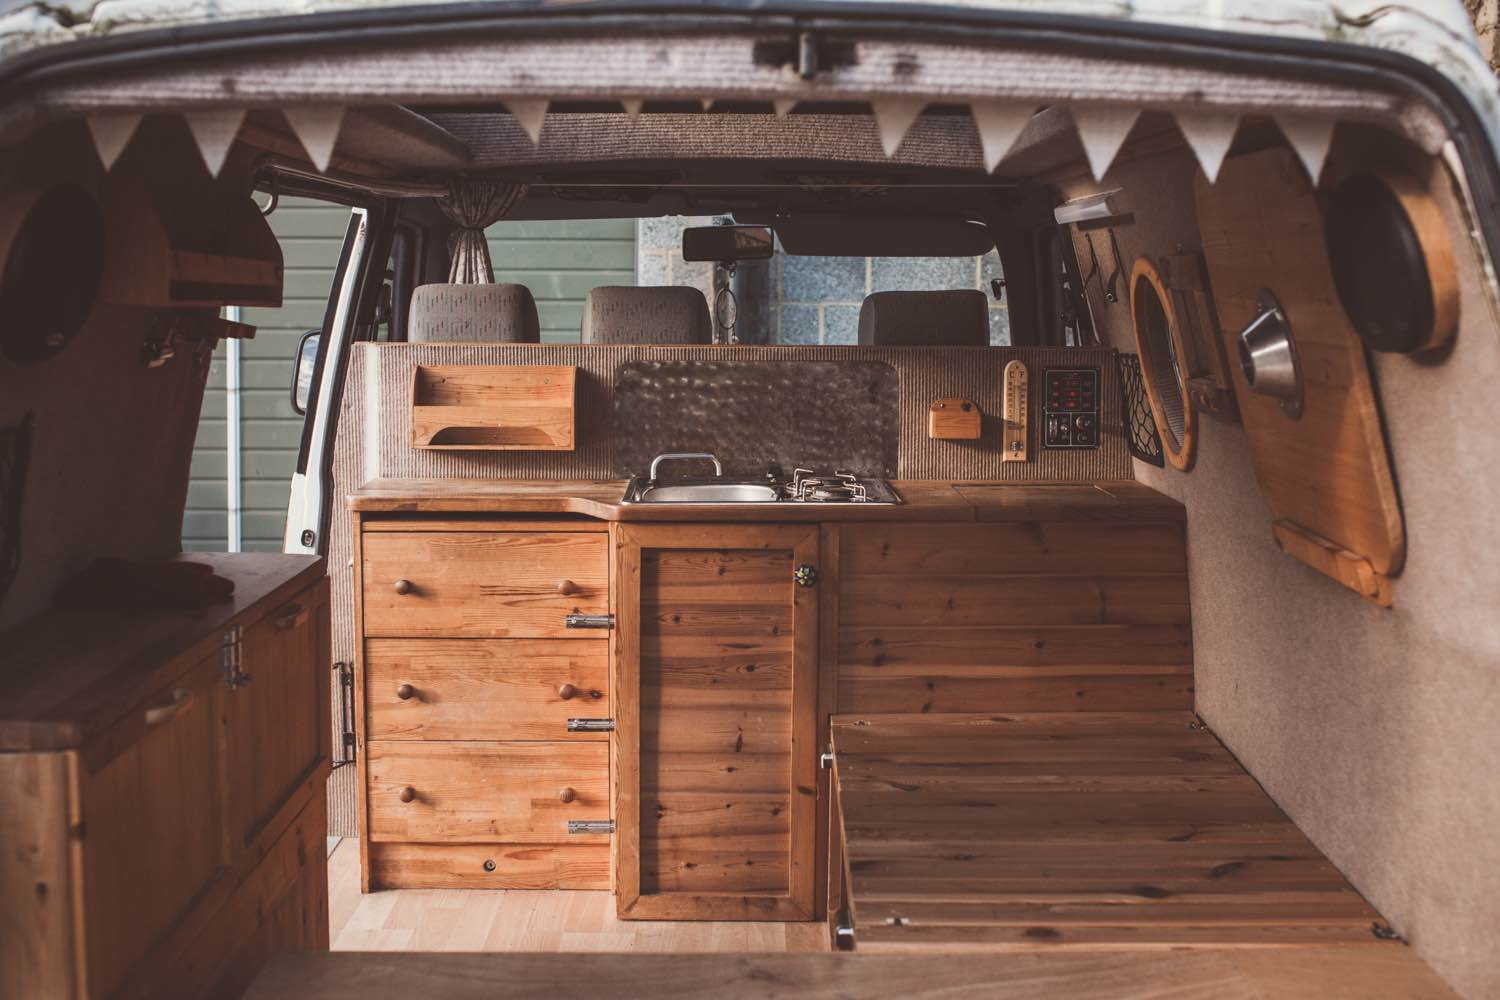 A place for everything and everything in its place. Photo by Rolling Home.